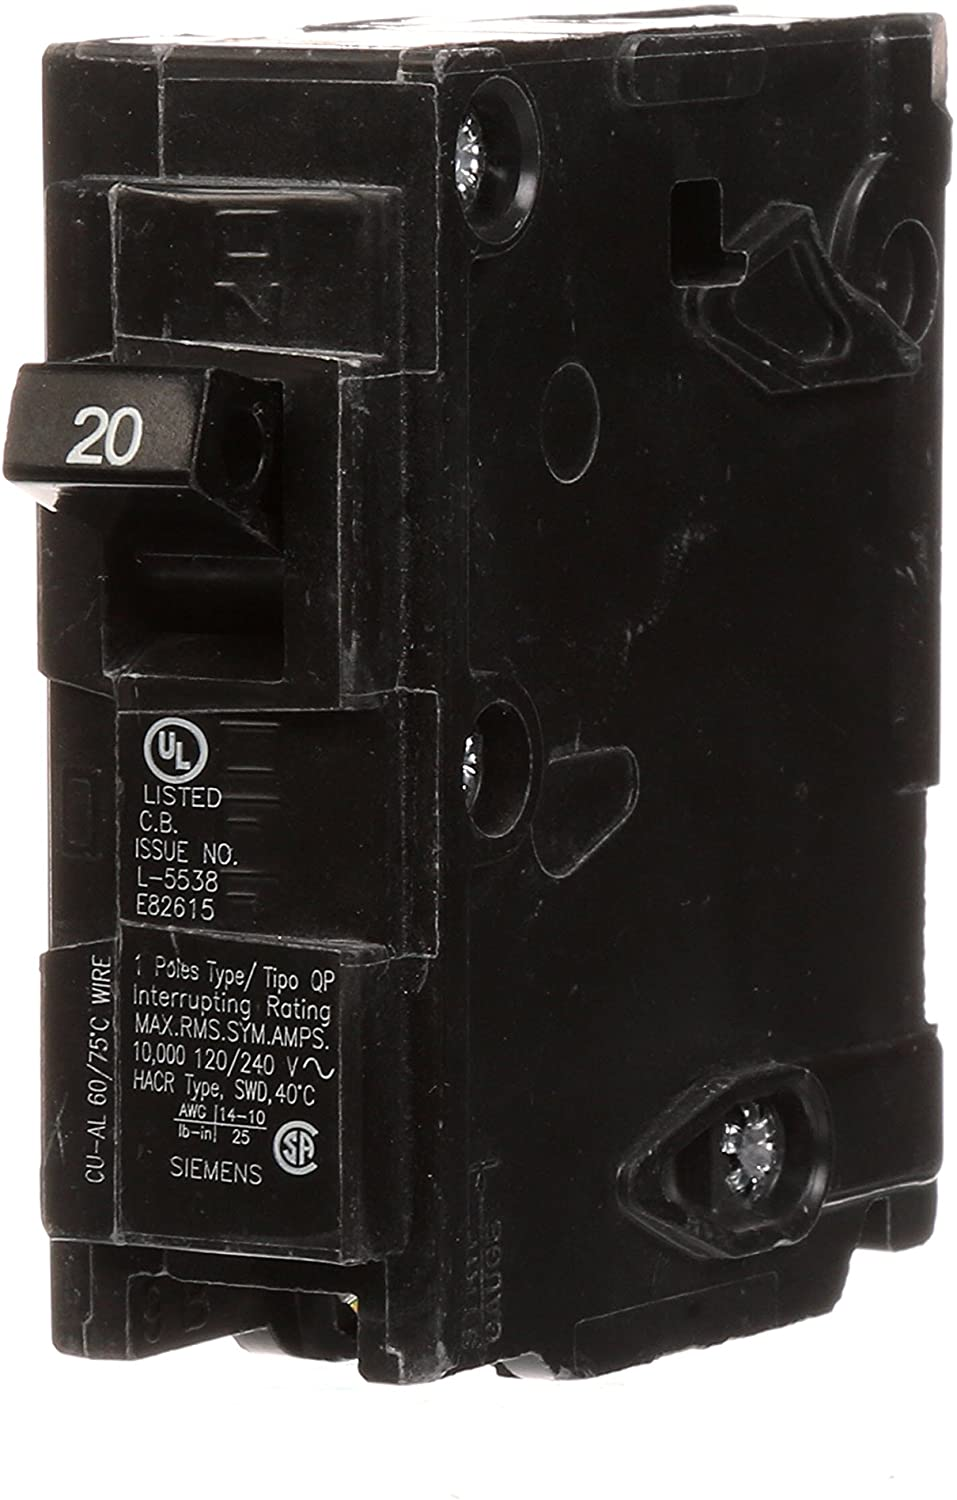 Q120 20-Amp Single Pole Type QP Circuit Breaker